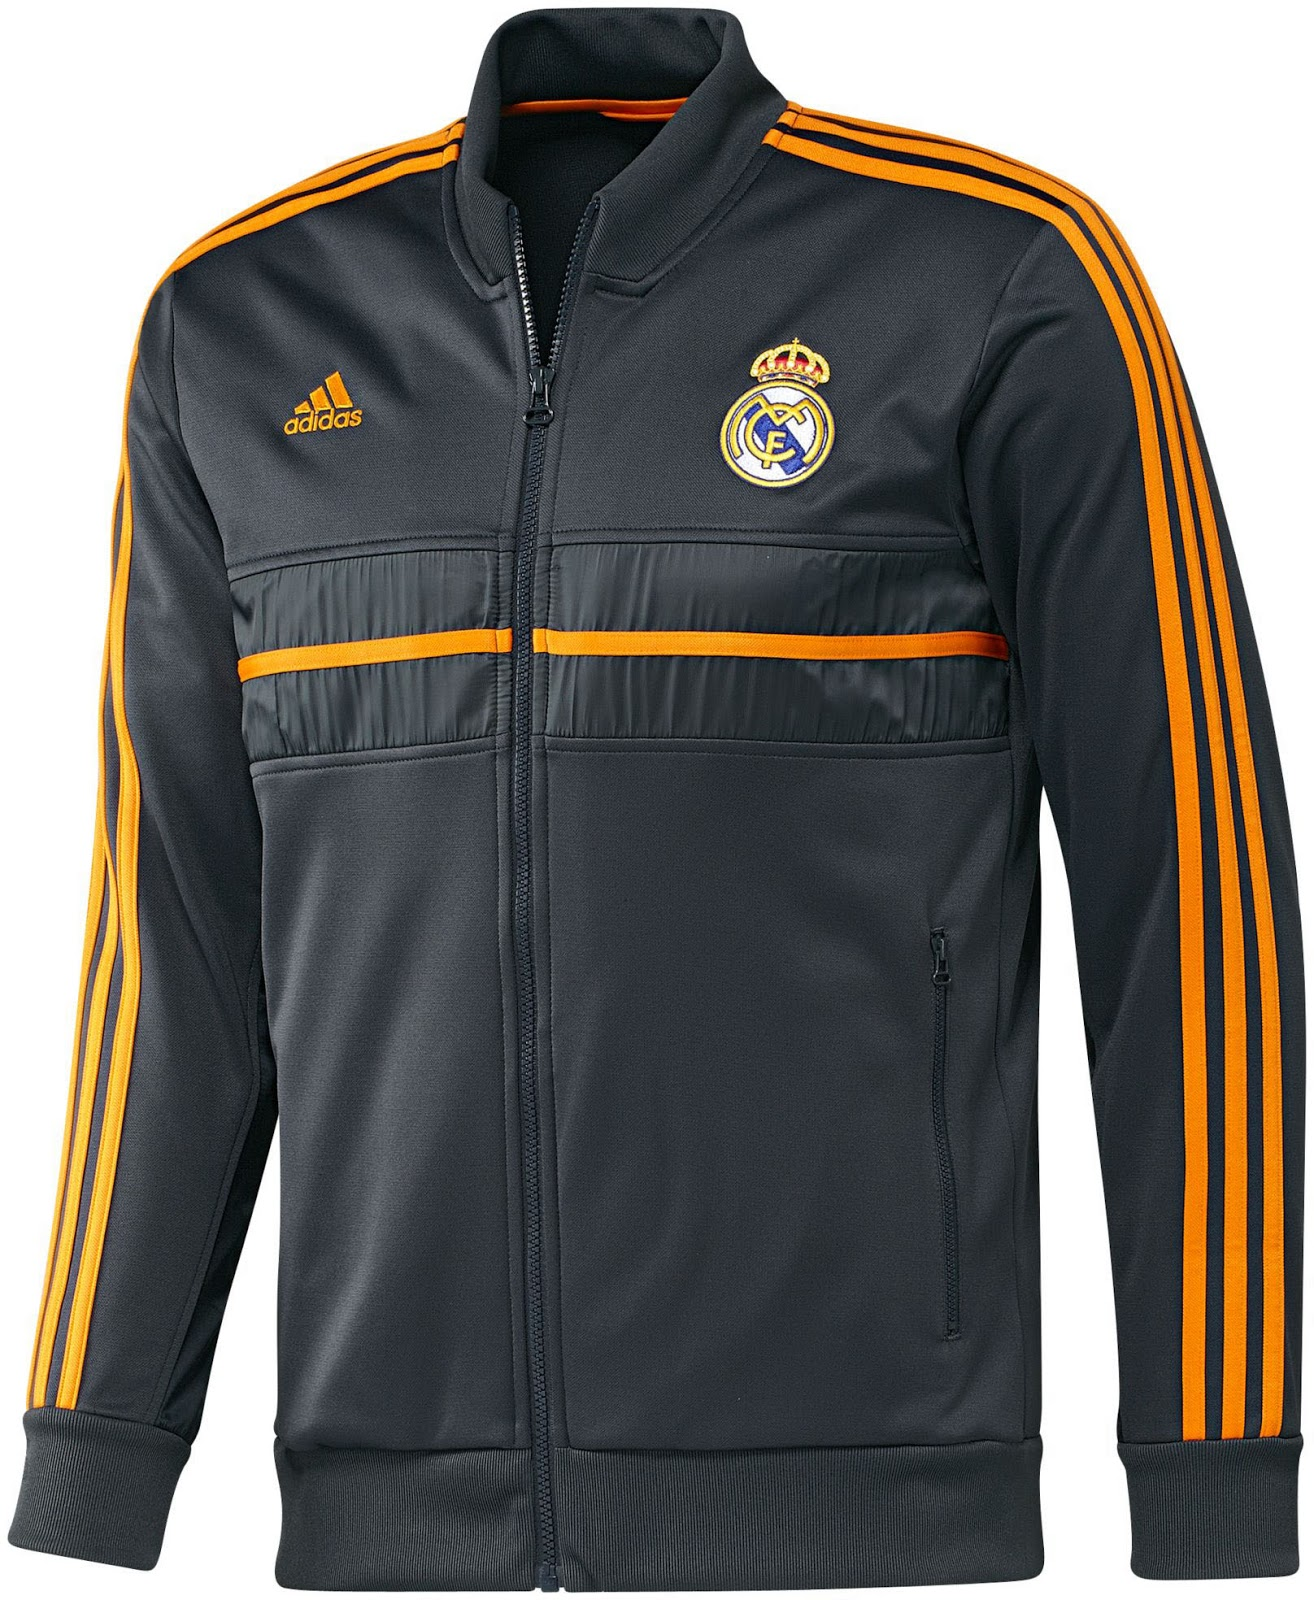 real madrid 13 14 2013 14 training kit athem jackets. Black Bedroom Furniture Sets. Home Design Ideas